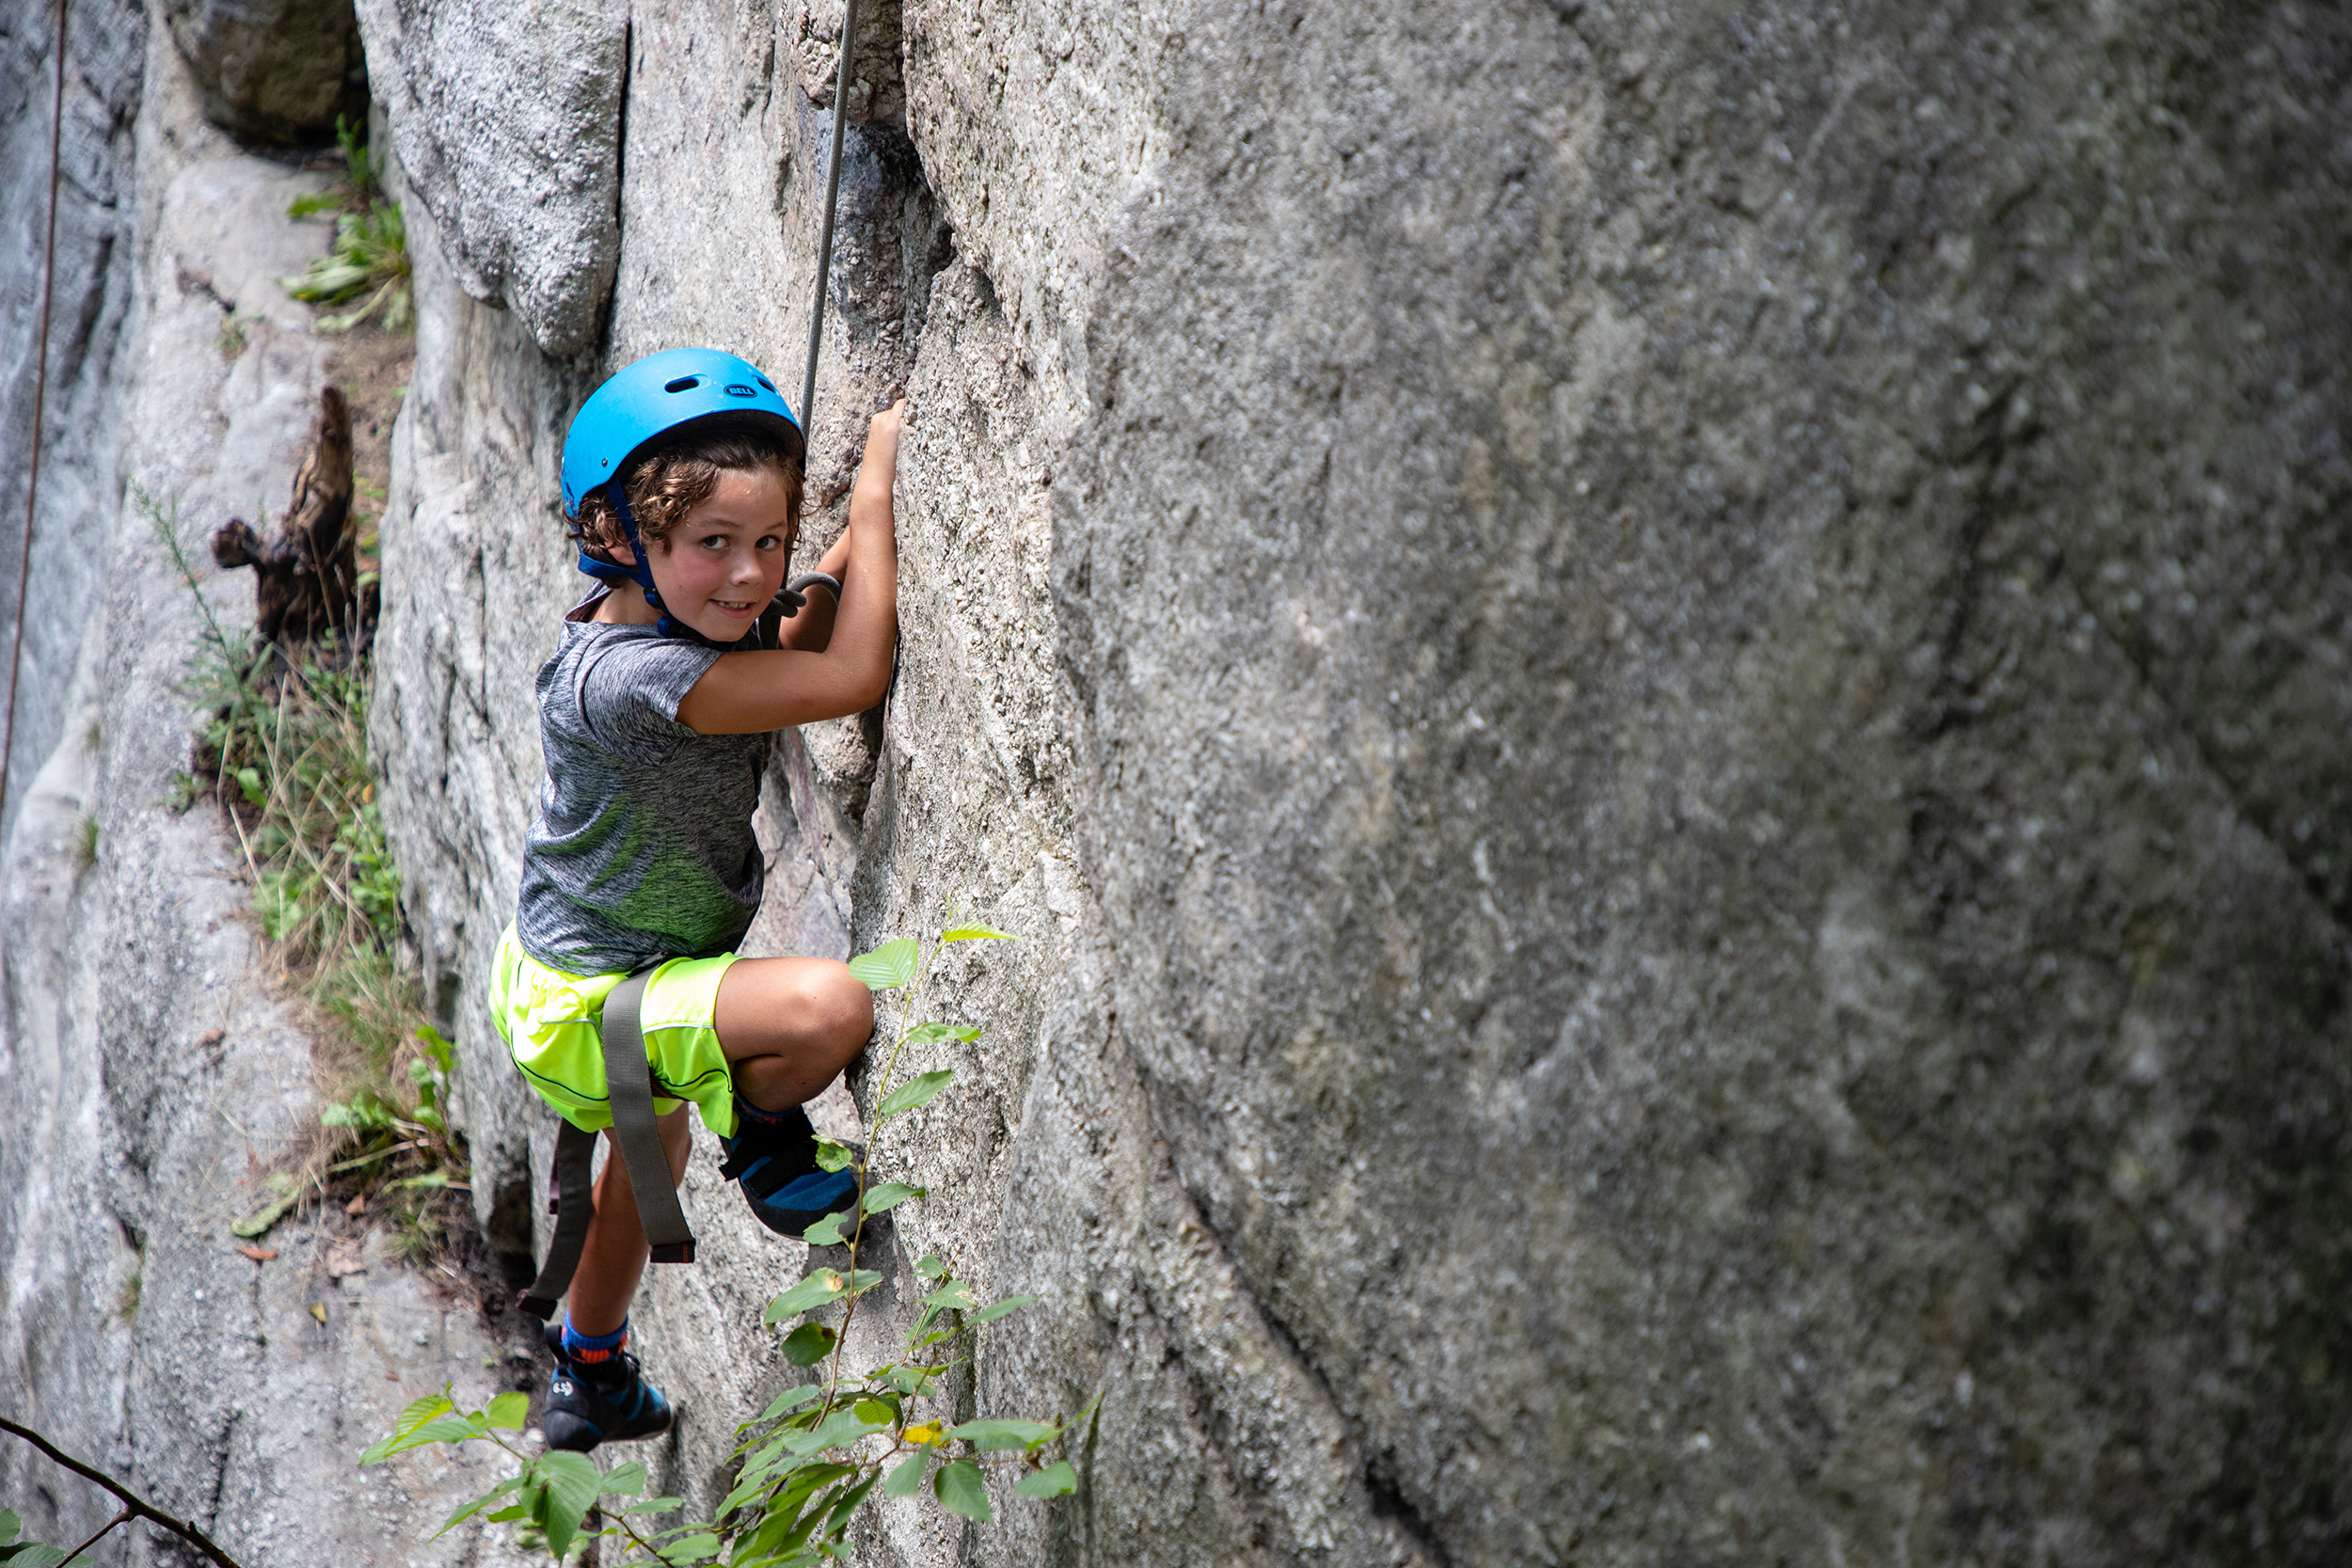 Outdoor climbing - in Peterskill, The Gunks with High Xposure (Tuesdays) | $60